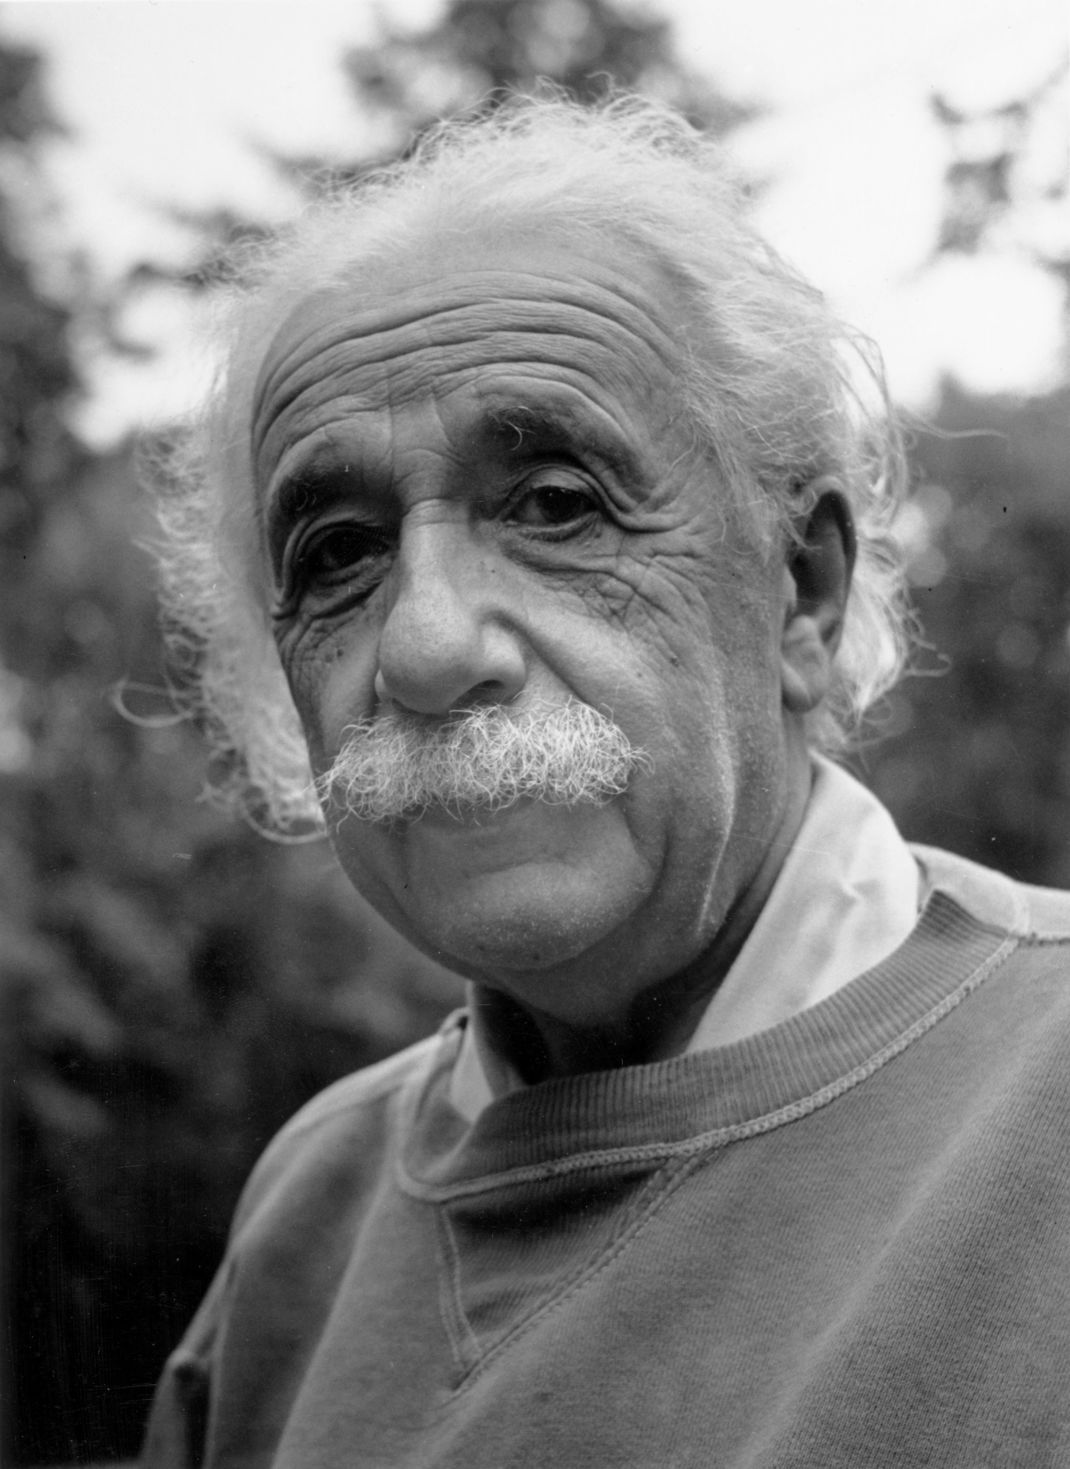 Albert Einstein Princertoni otthonában 1950-ben (Doreen Spooner/Keystone/Getty Images)